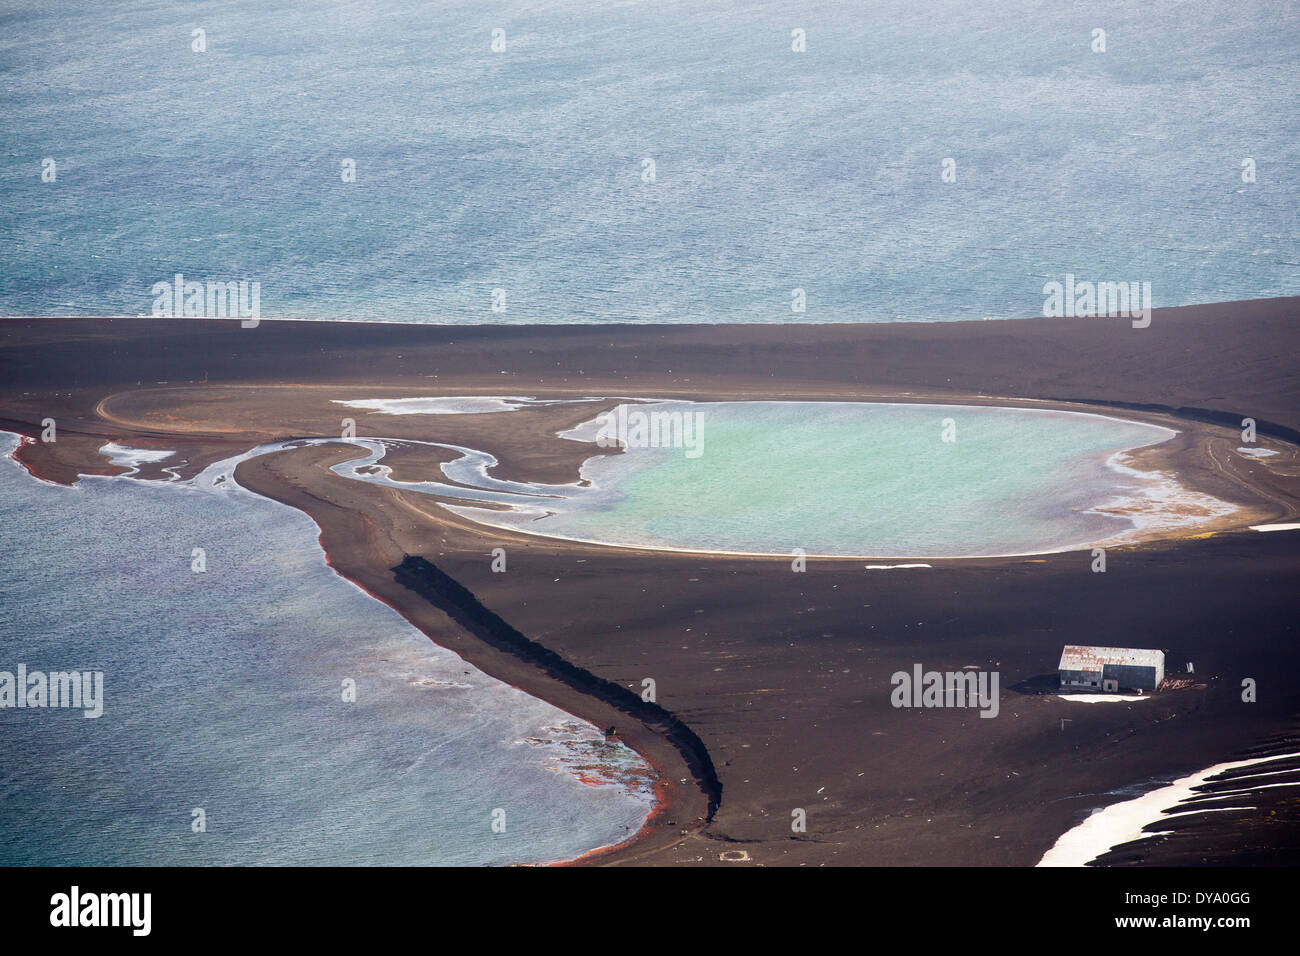 The sheltered harbour in the middle of Deception Island in the South Shetland Islands off the Antarctic Peninsular - Stock Image